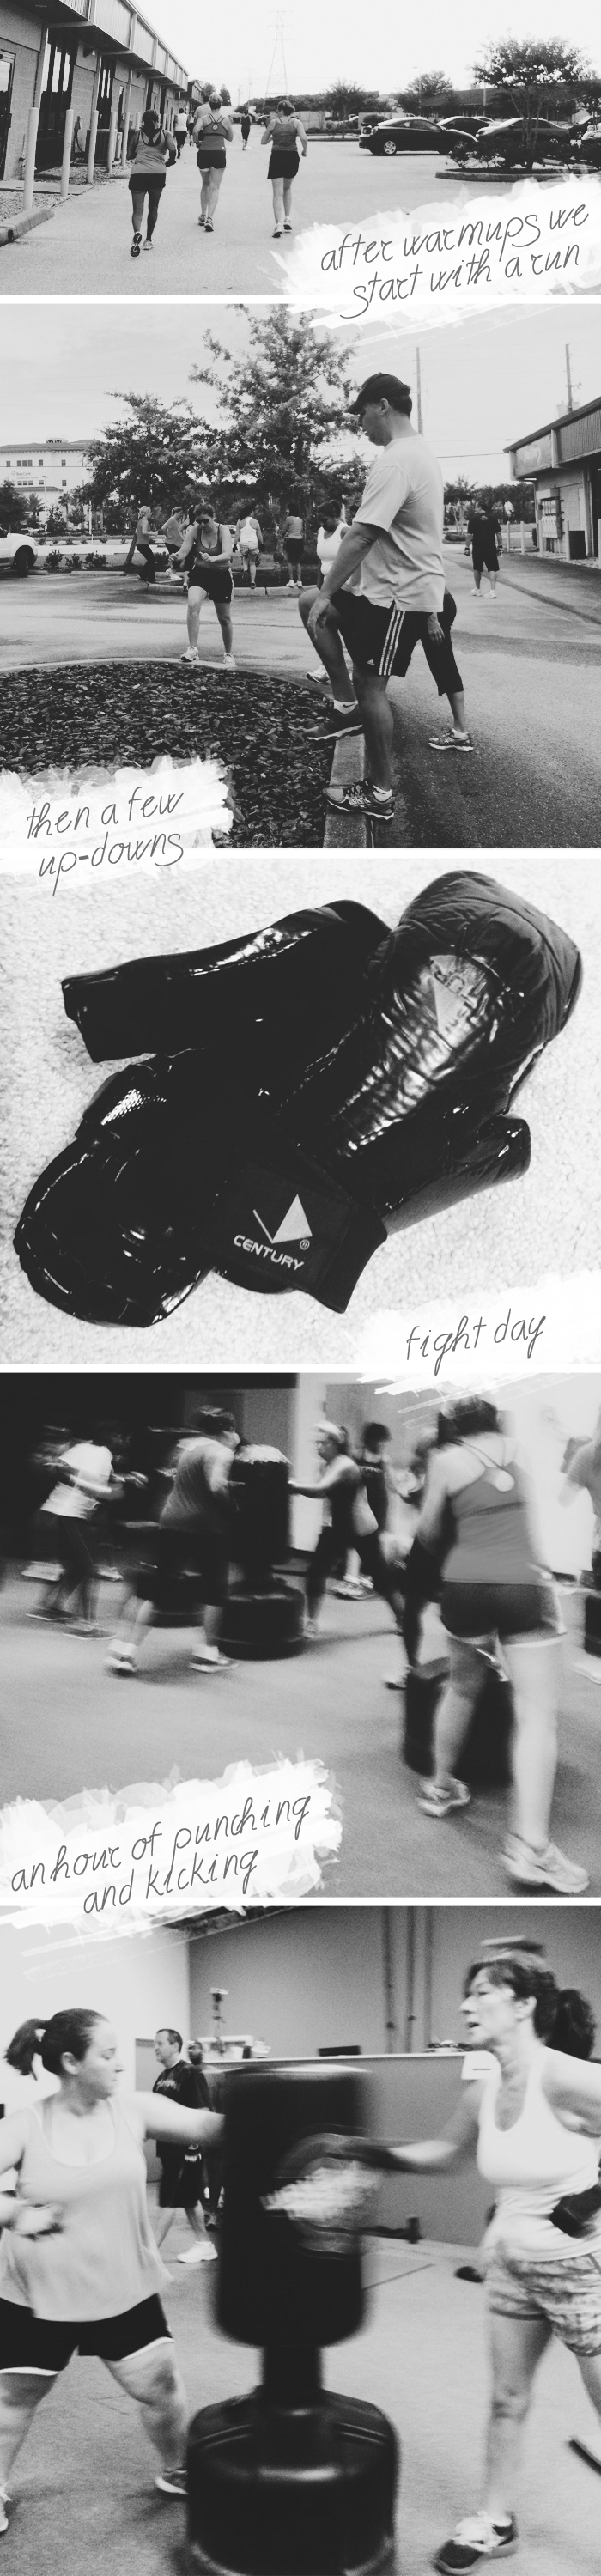 bootcamp_fight day